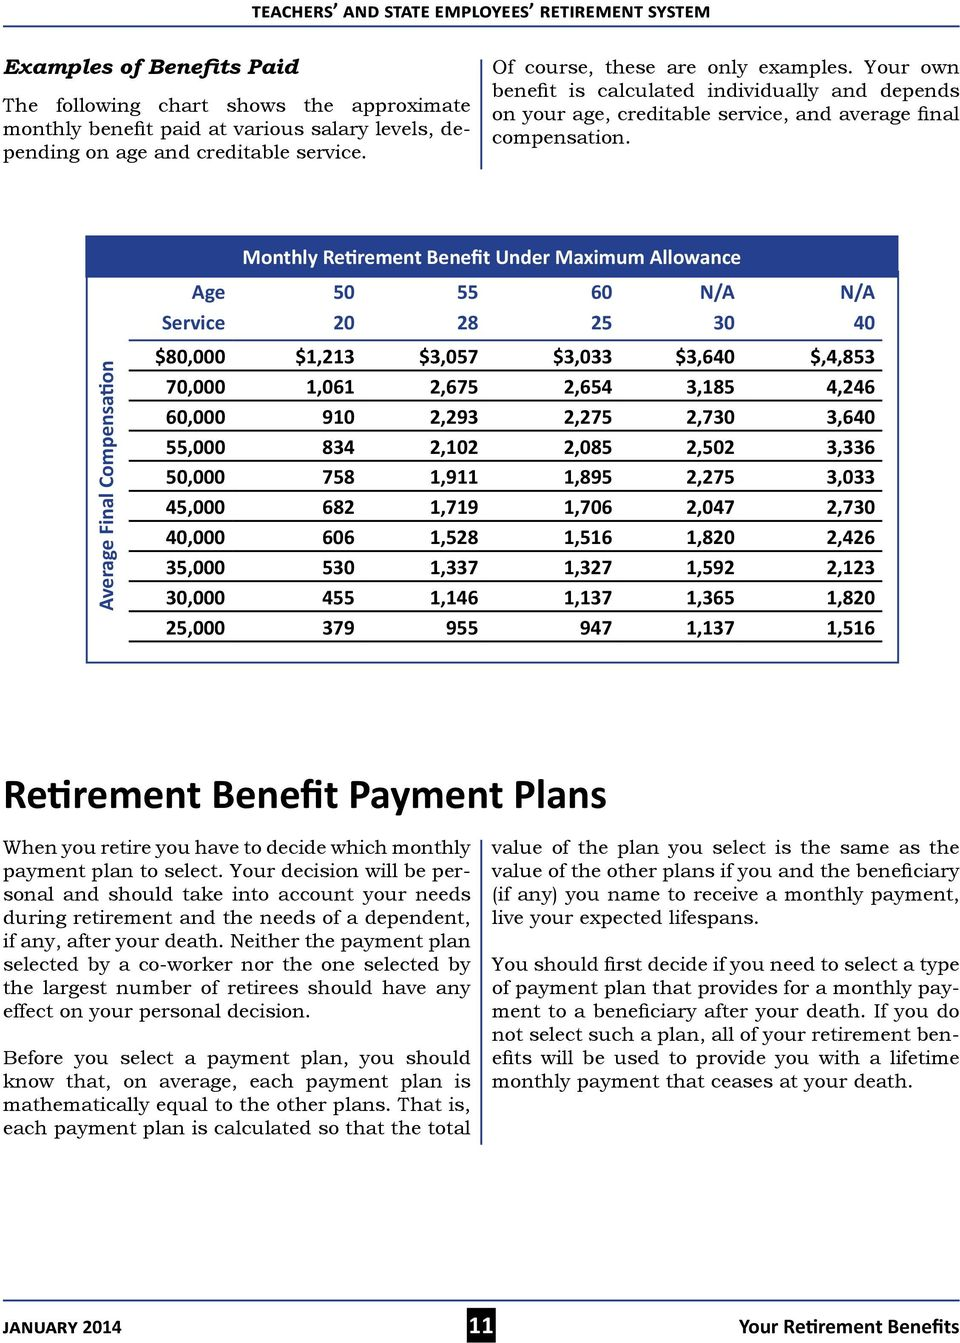 Average Final Compensation Monthly Retirement Benefit Under Maximum Allowance Age 50 55 60 N/A N/A Service 20 28 25 30 40 $80,000 $1,213 $3,057 $3,033 $3,640 $,4,853 70,000 1,061 2,675 2,654 3,185